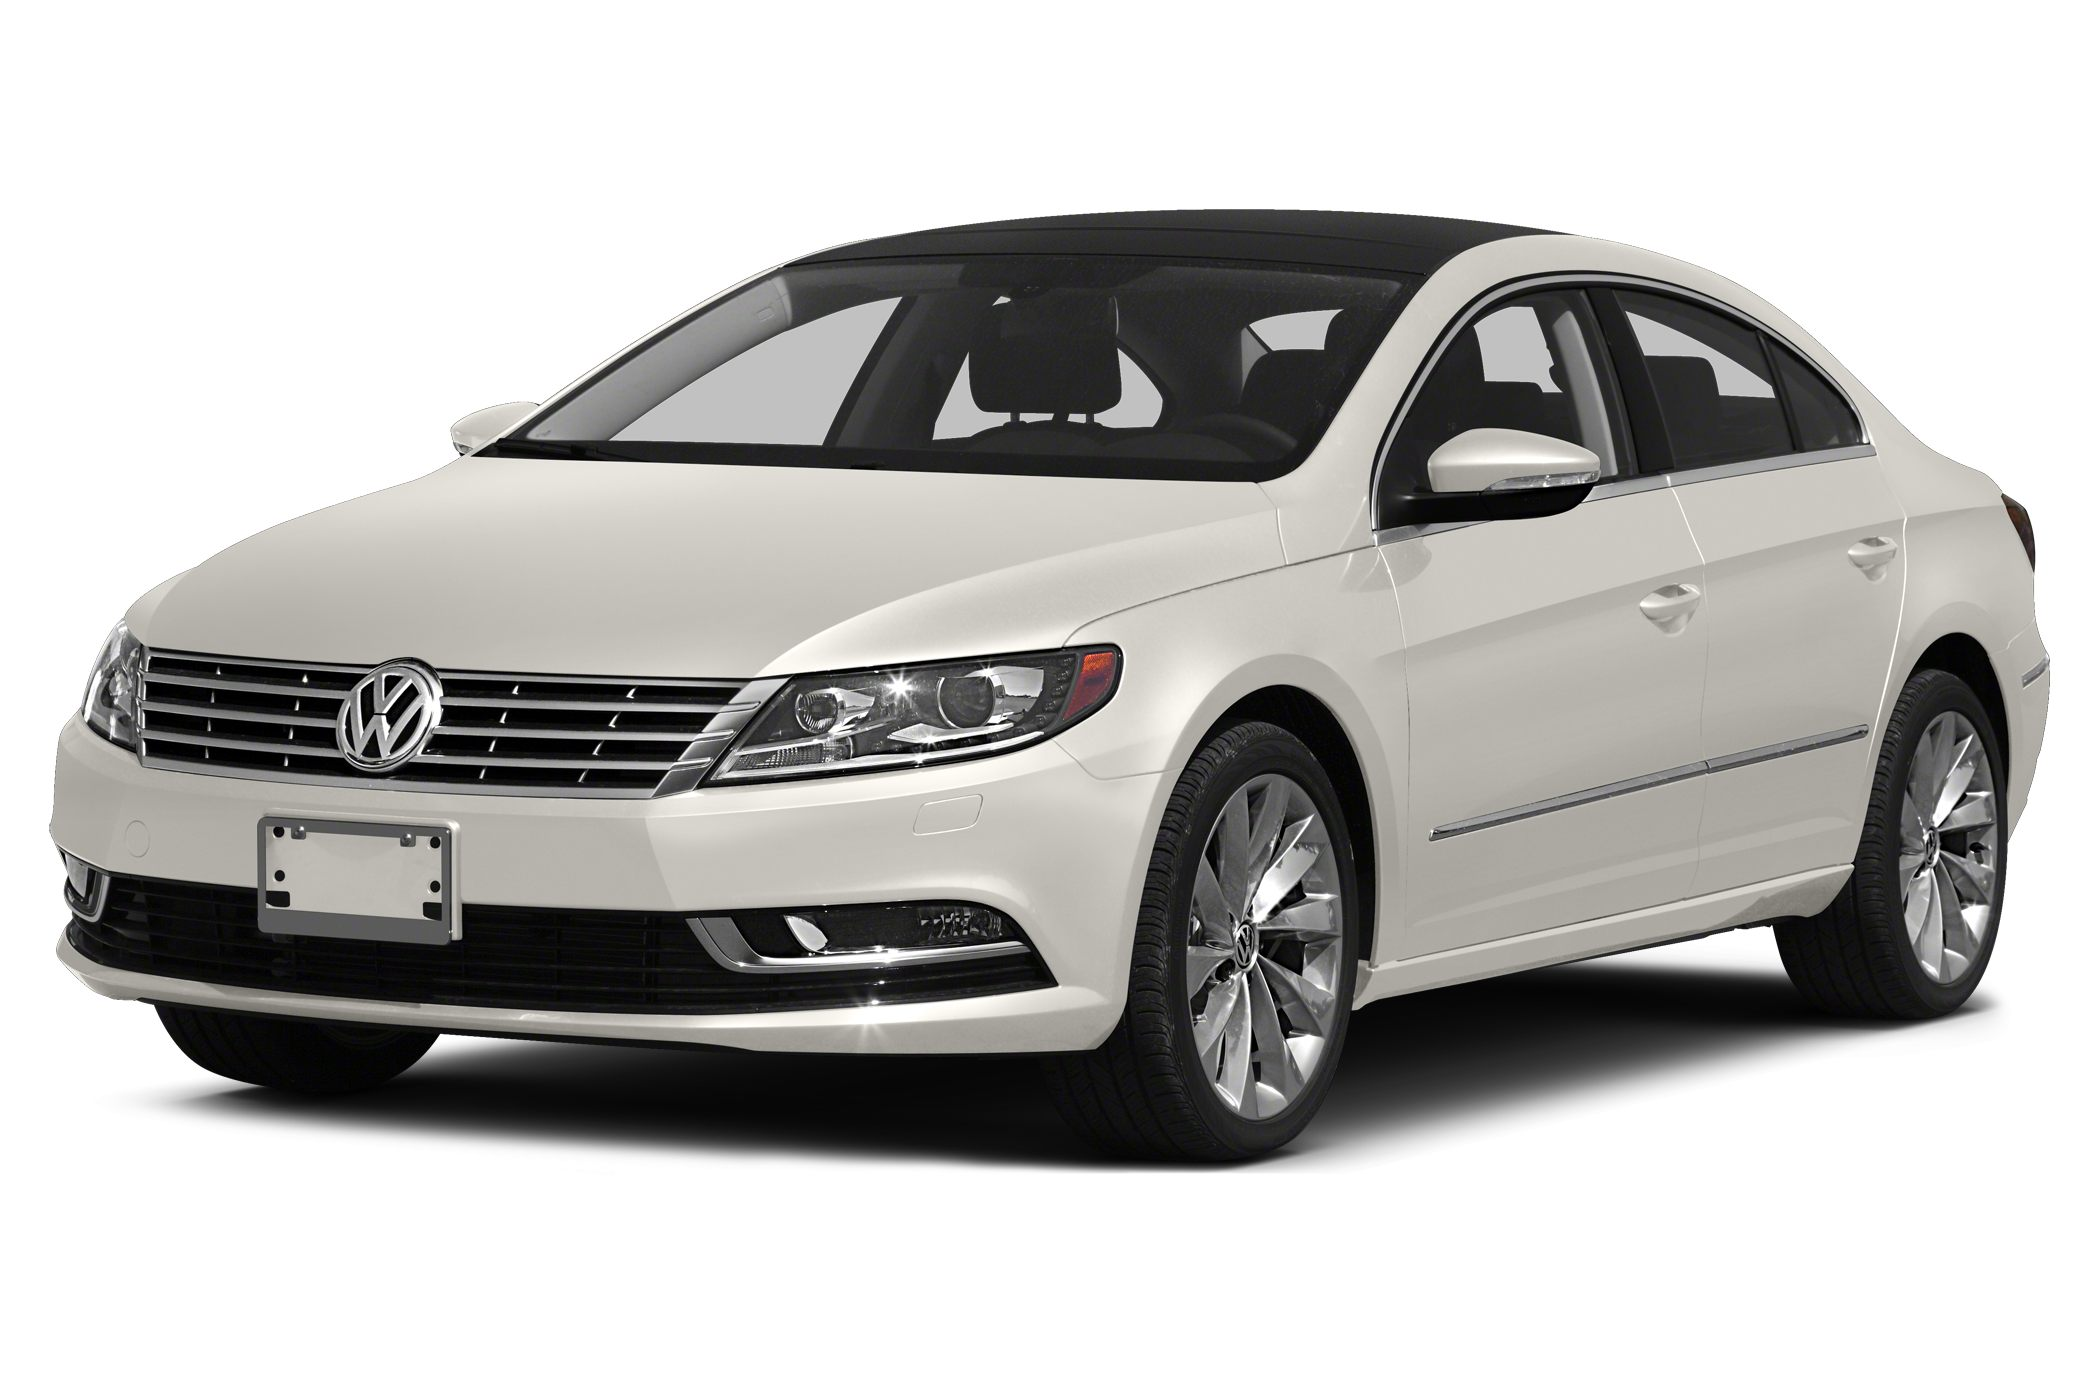 2015 Volkswagen CC 2.0T Sport Sedan for sale in Bakersfield for $37,025 with 12 miles.